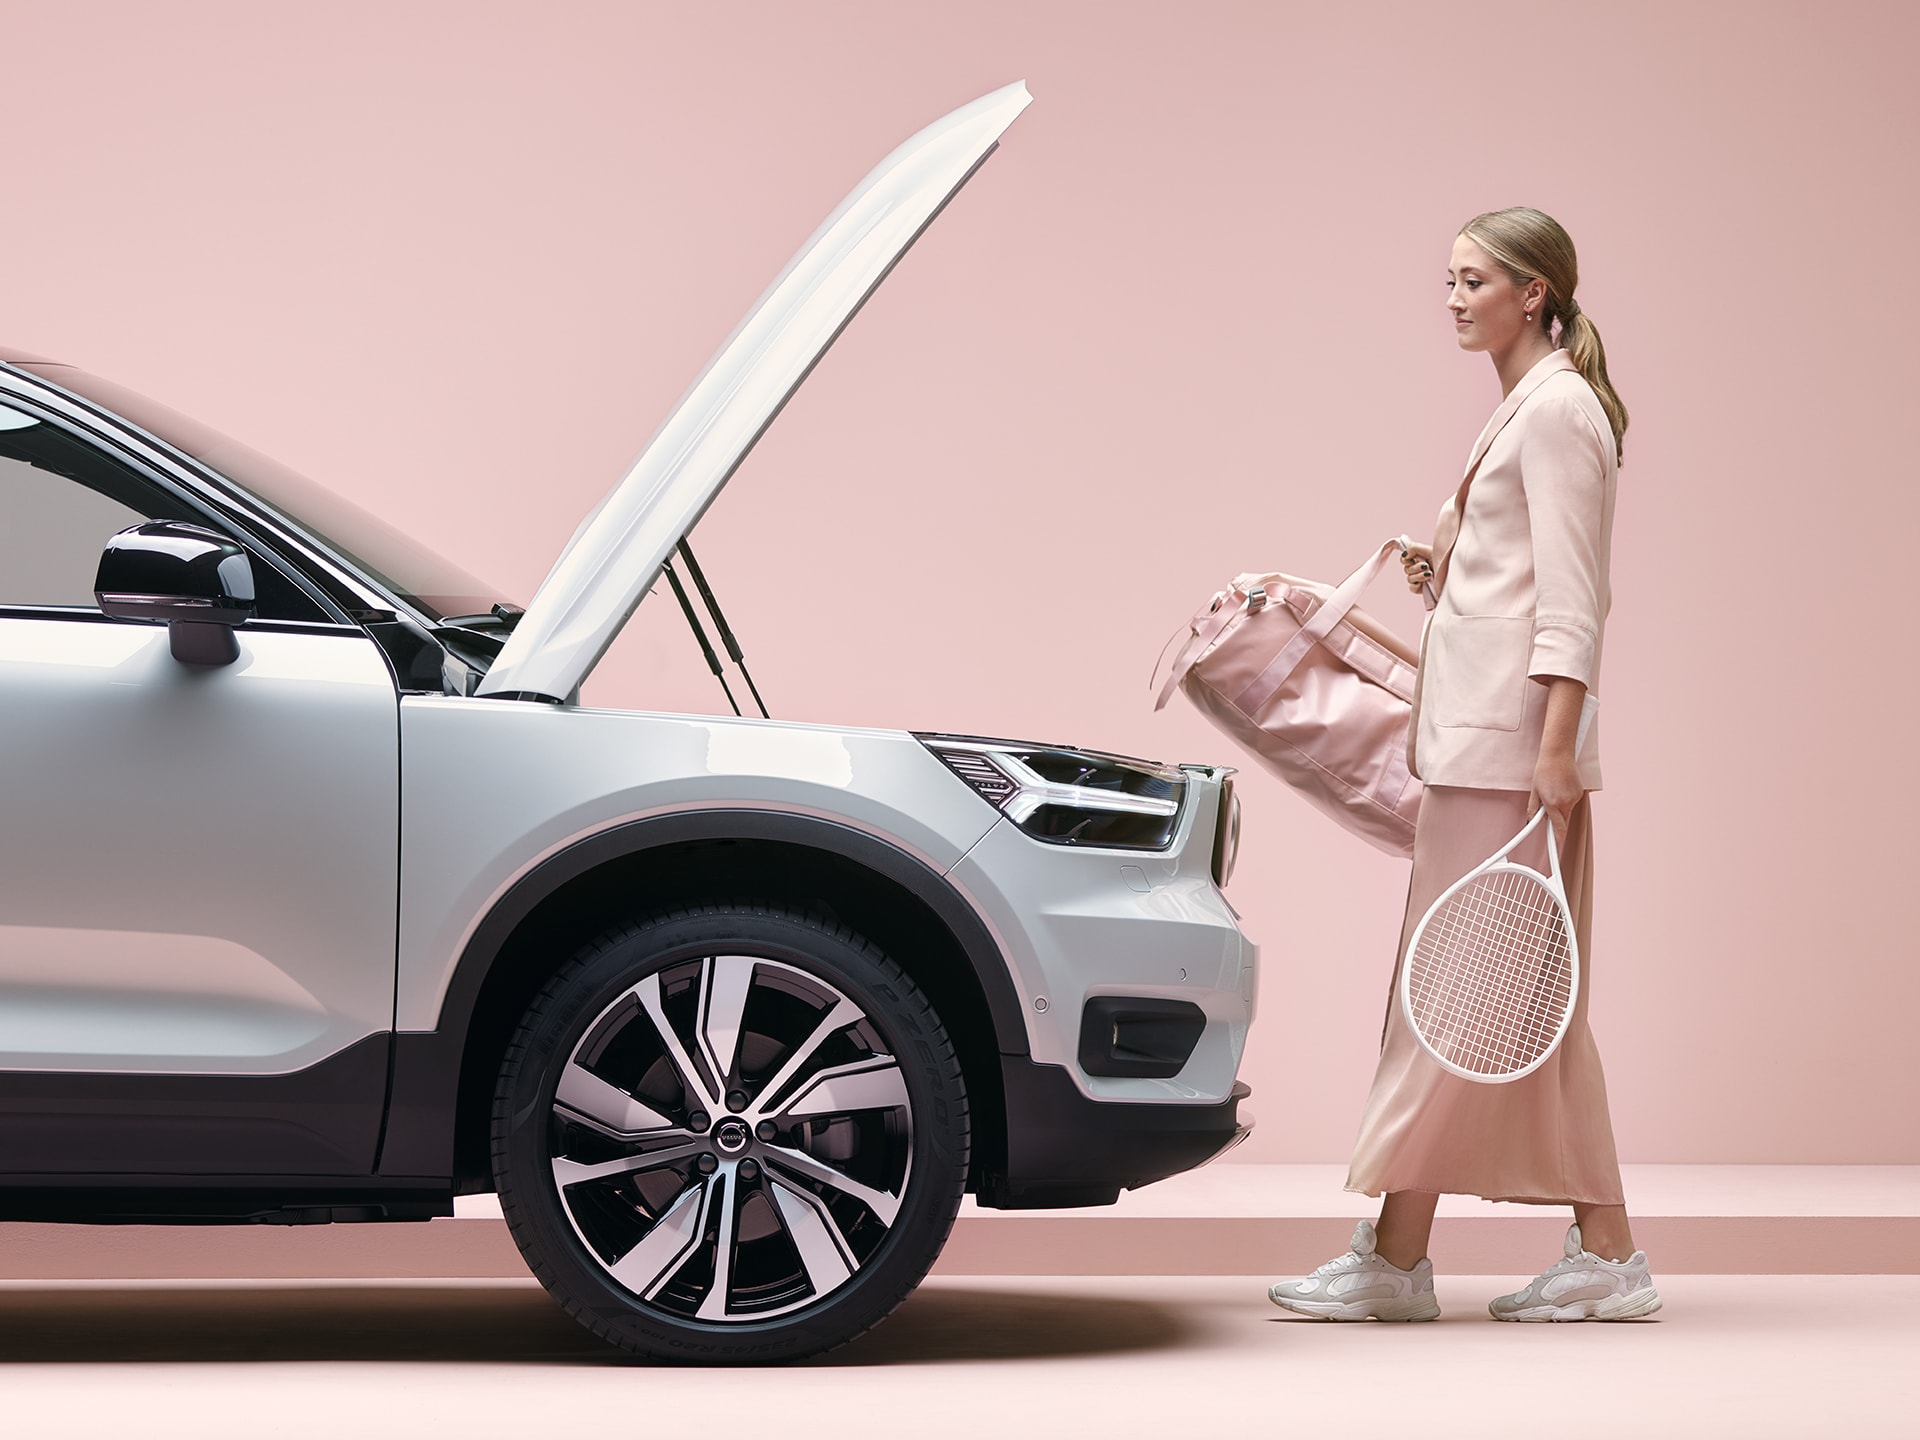 A blonde girl with a sports bag and tennis racket in her hand is on her way to her XC40 Recharge